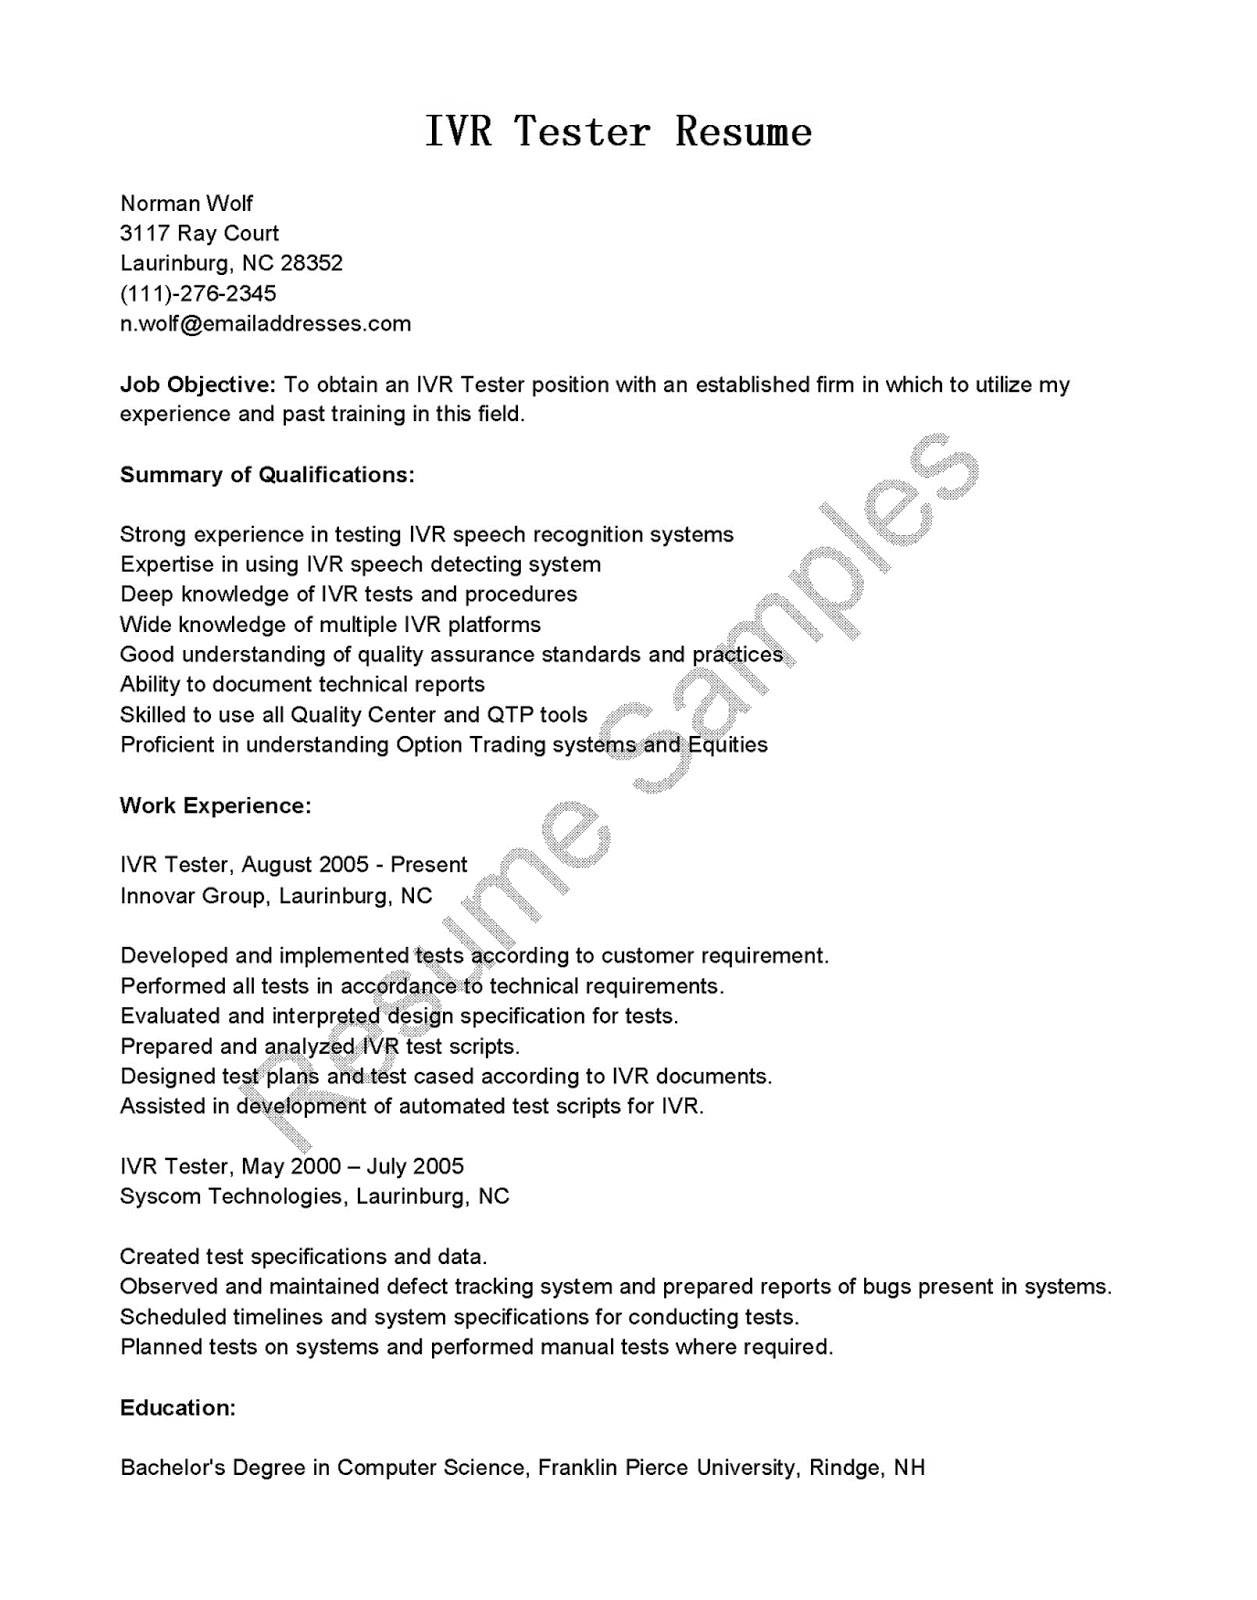 sample resume for manual testing professional of 2 yr experience best of 1 year experience resume format for manual testing fresh resume